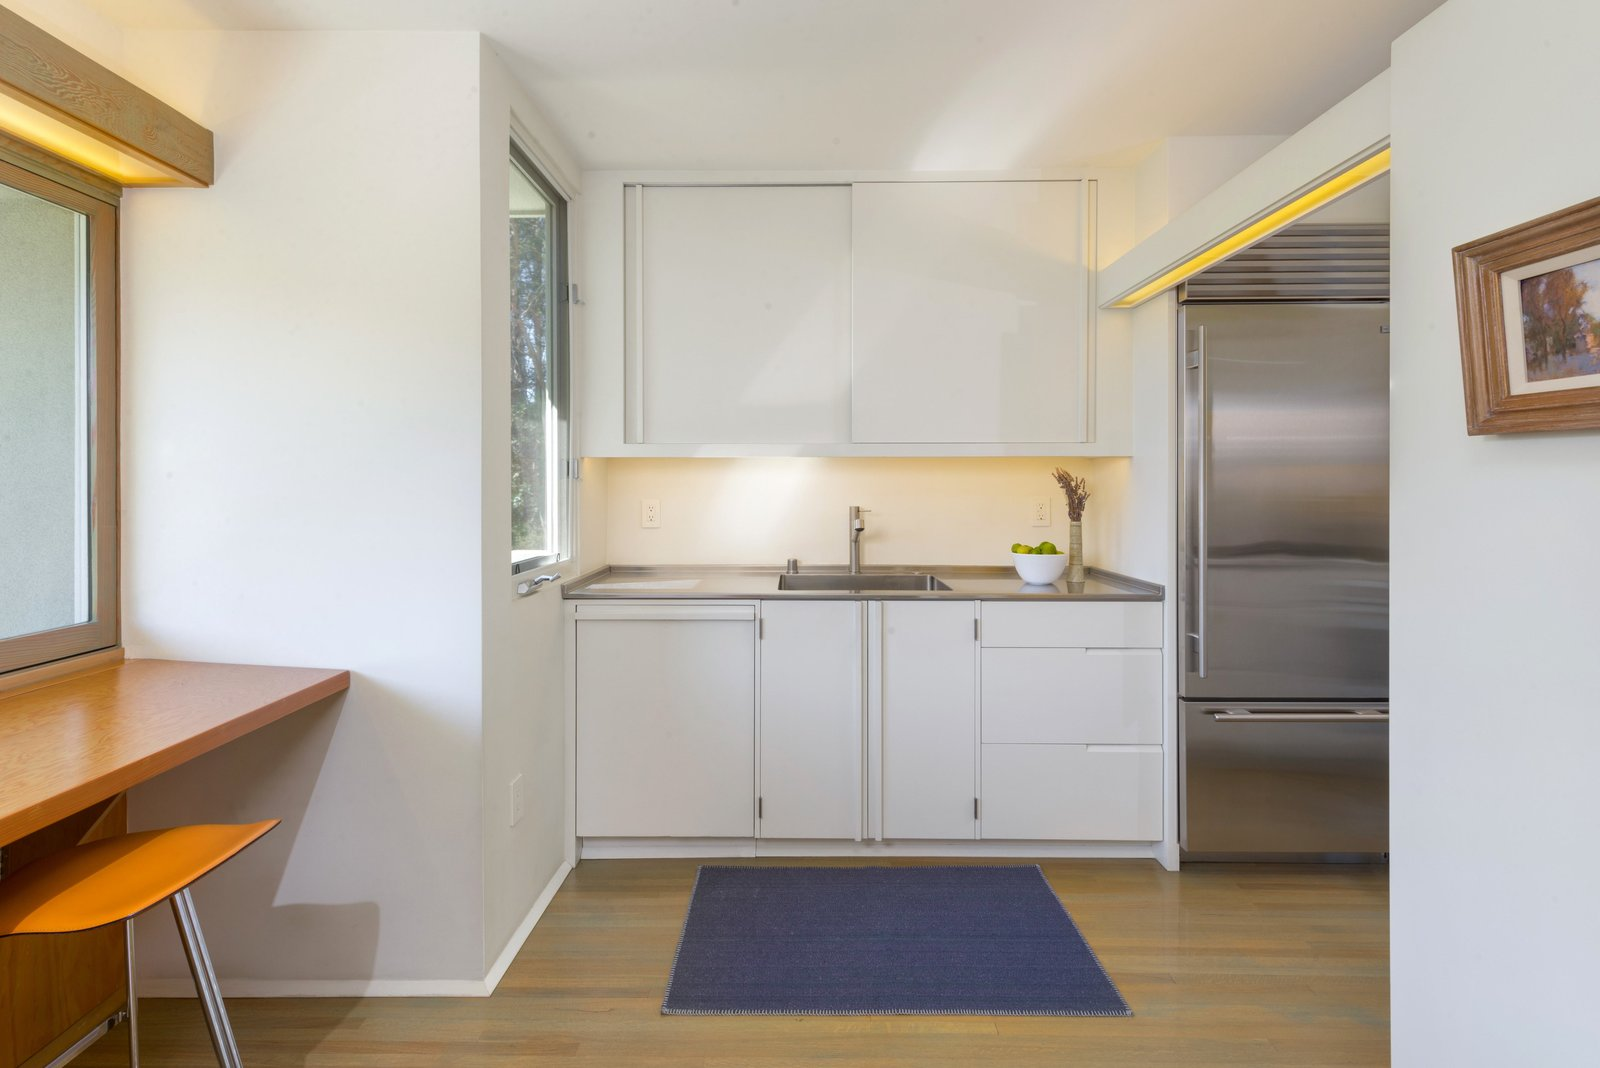 Kitchen, Ceiling, Refrigerator, Medium Hardwood, White, Drop In, Wood, Rug, Accent, and Quartzite While the updated kitchen is compact, eat-in bar seating is located underneath a large window.     Kitchen Rug Ceiling Photos from Own This Charming 1941 Midcentury in L.A. For $1.9M